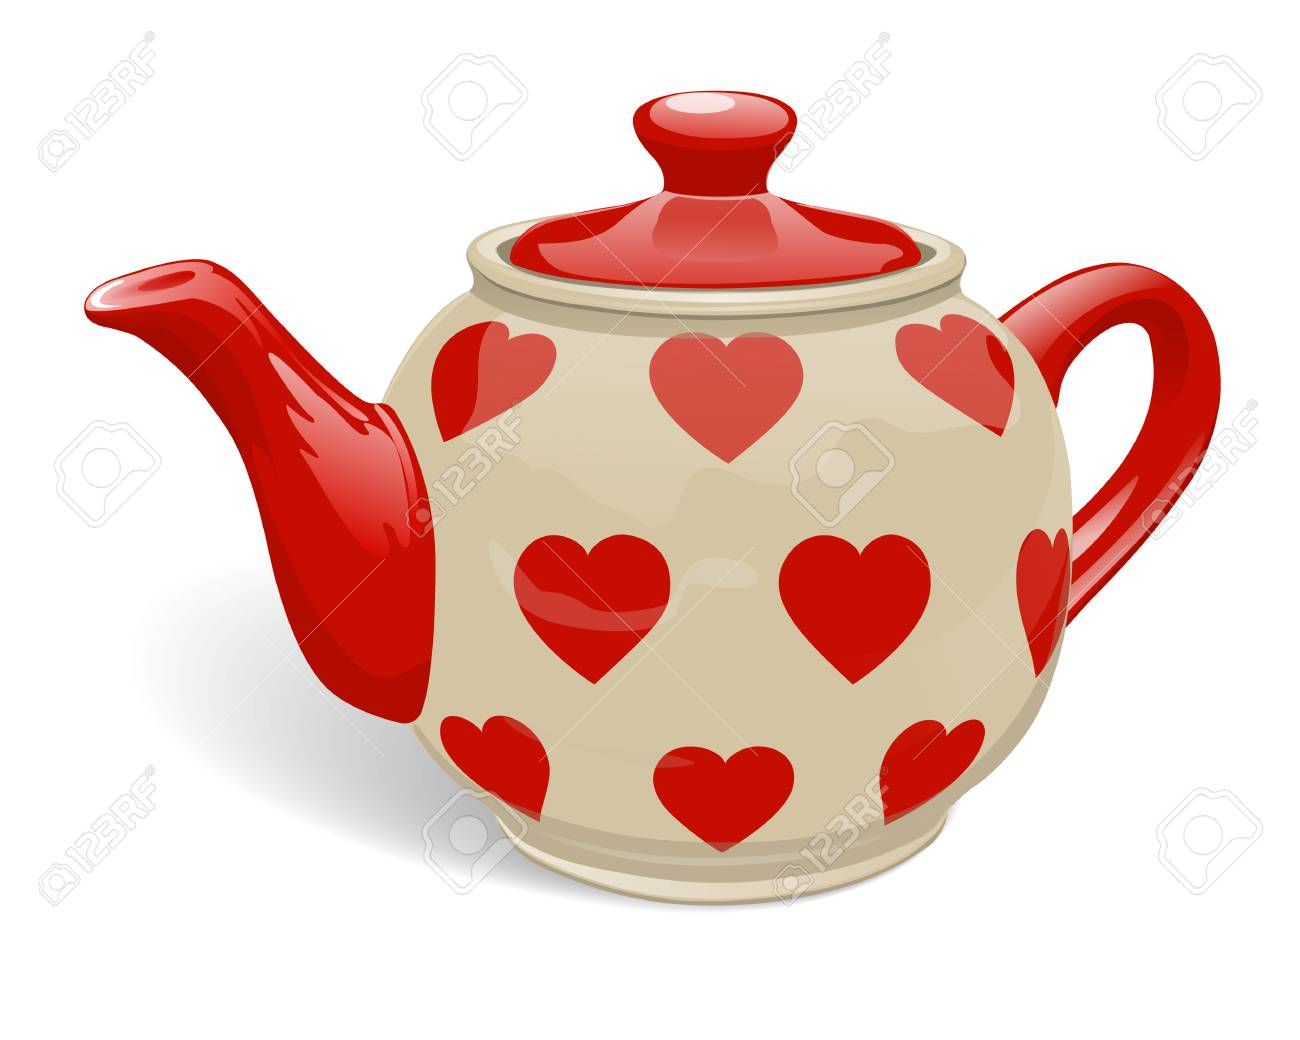 Realistic Ceramic Teapot Red Color With A Pattern Of Hearts Royalty Free Cliparts Vectors And Stock Illustration Image 123015033